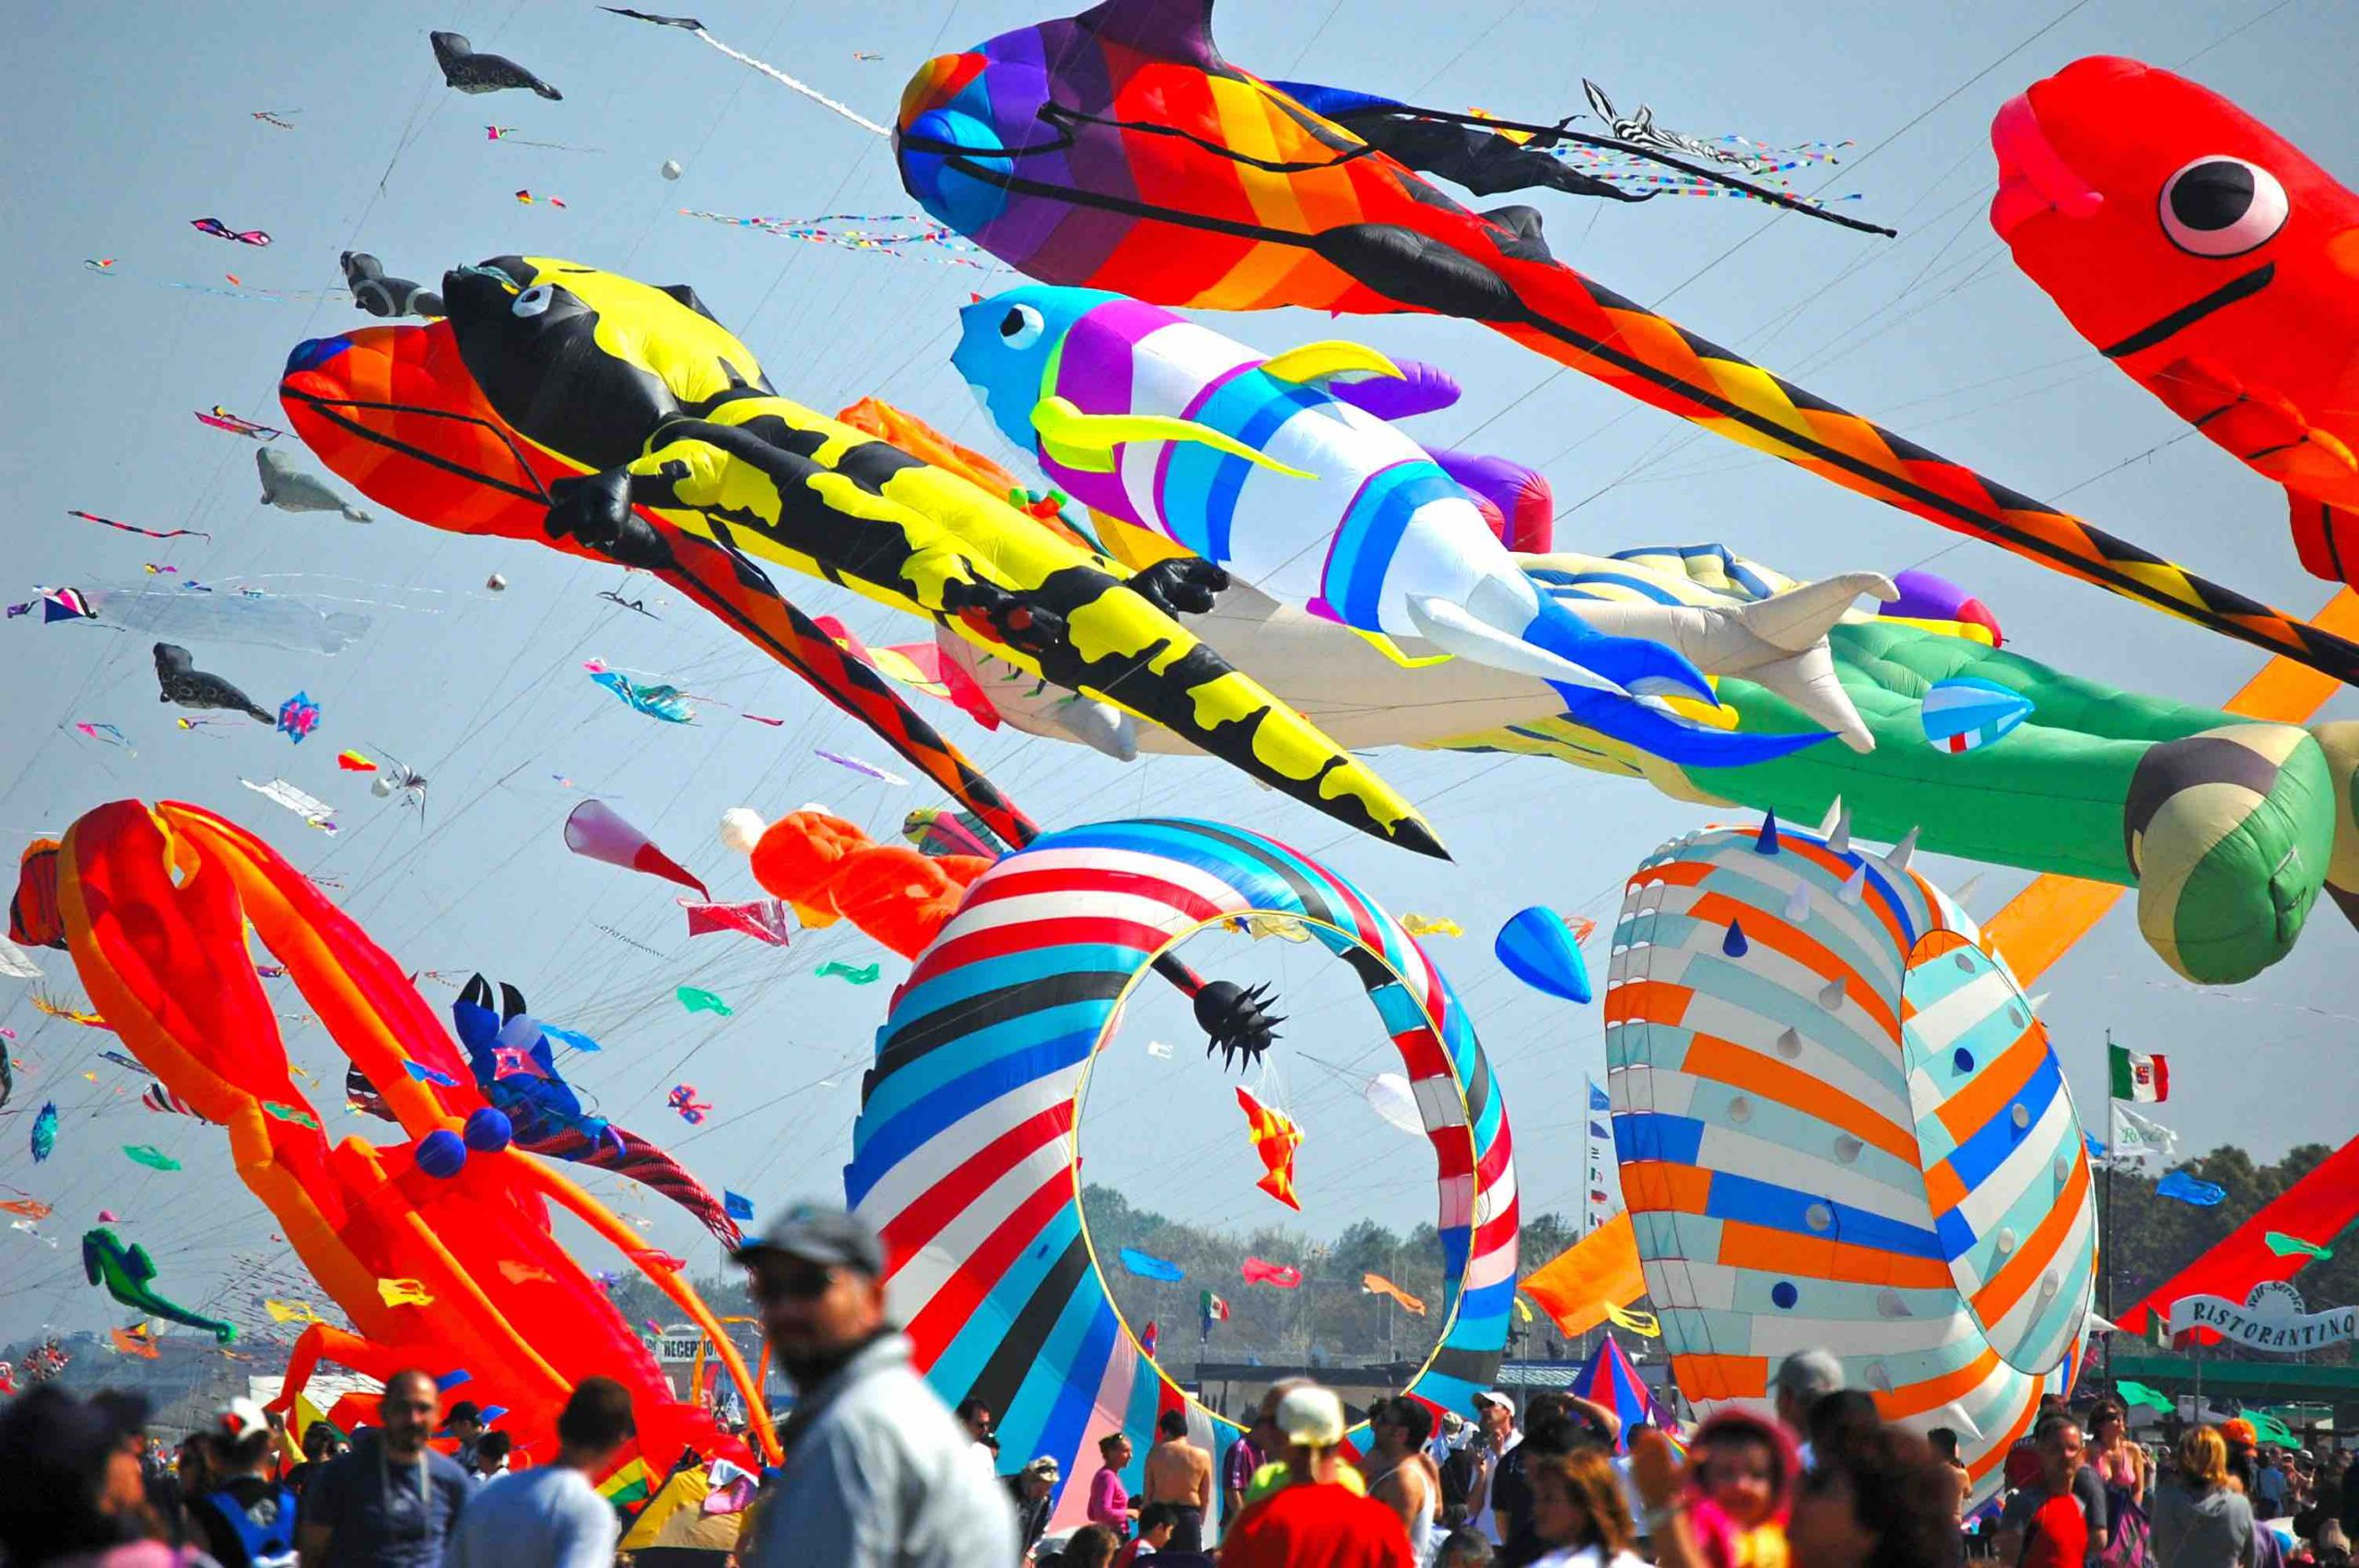 Flying kites for the most colored festival in Emilia-Romagna